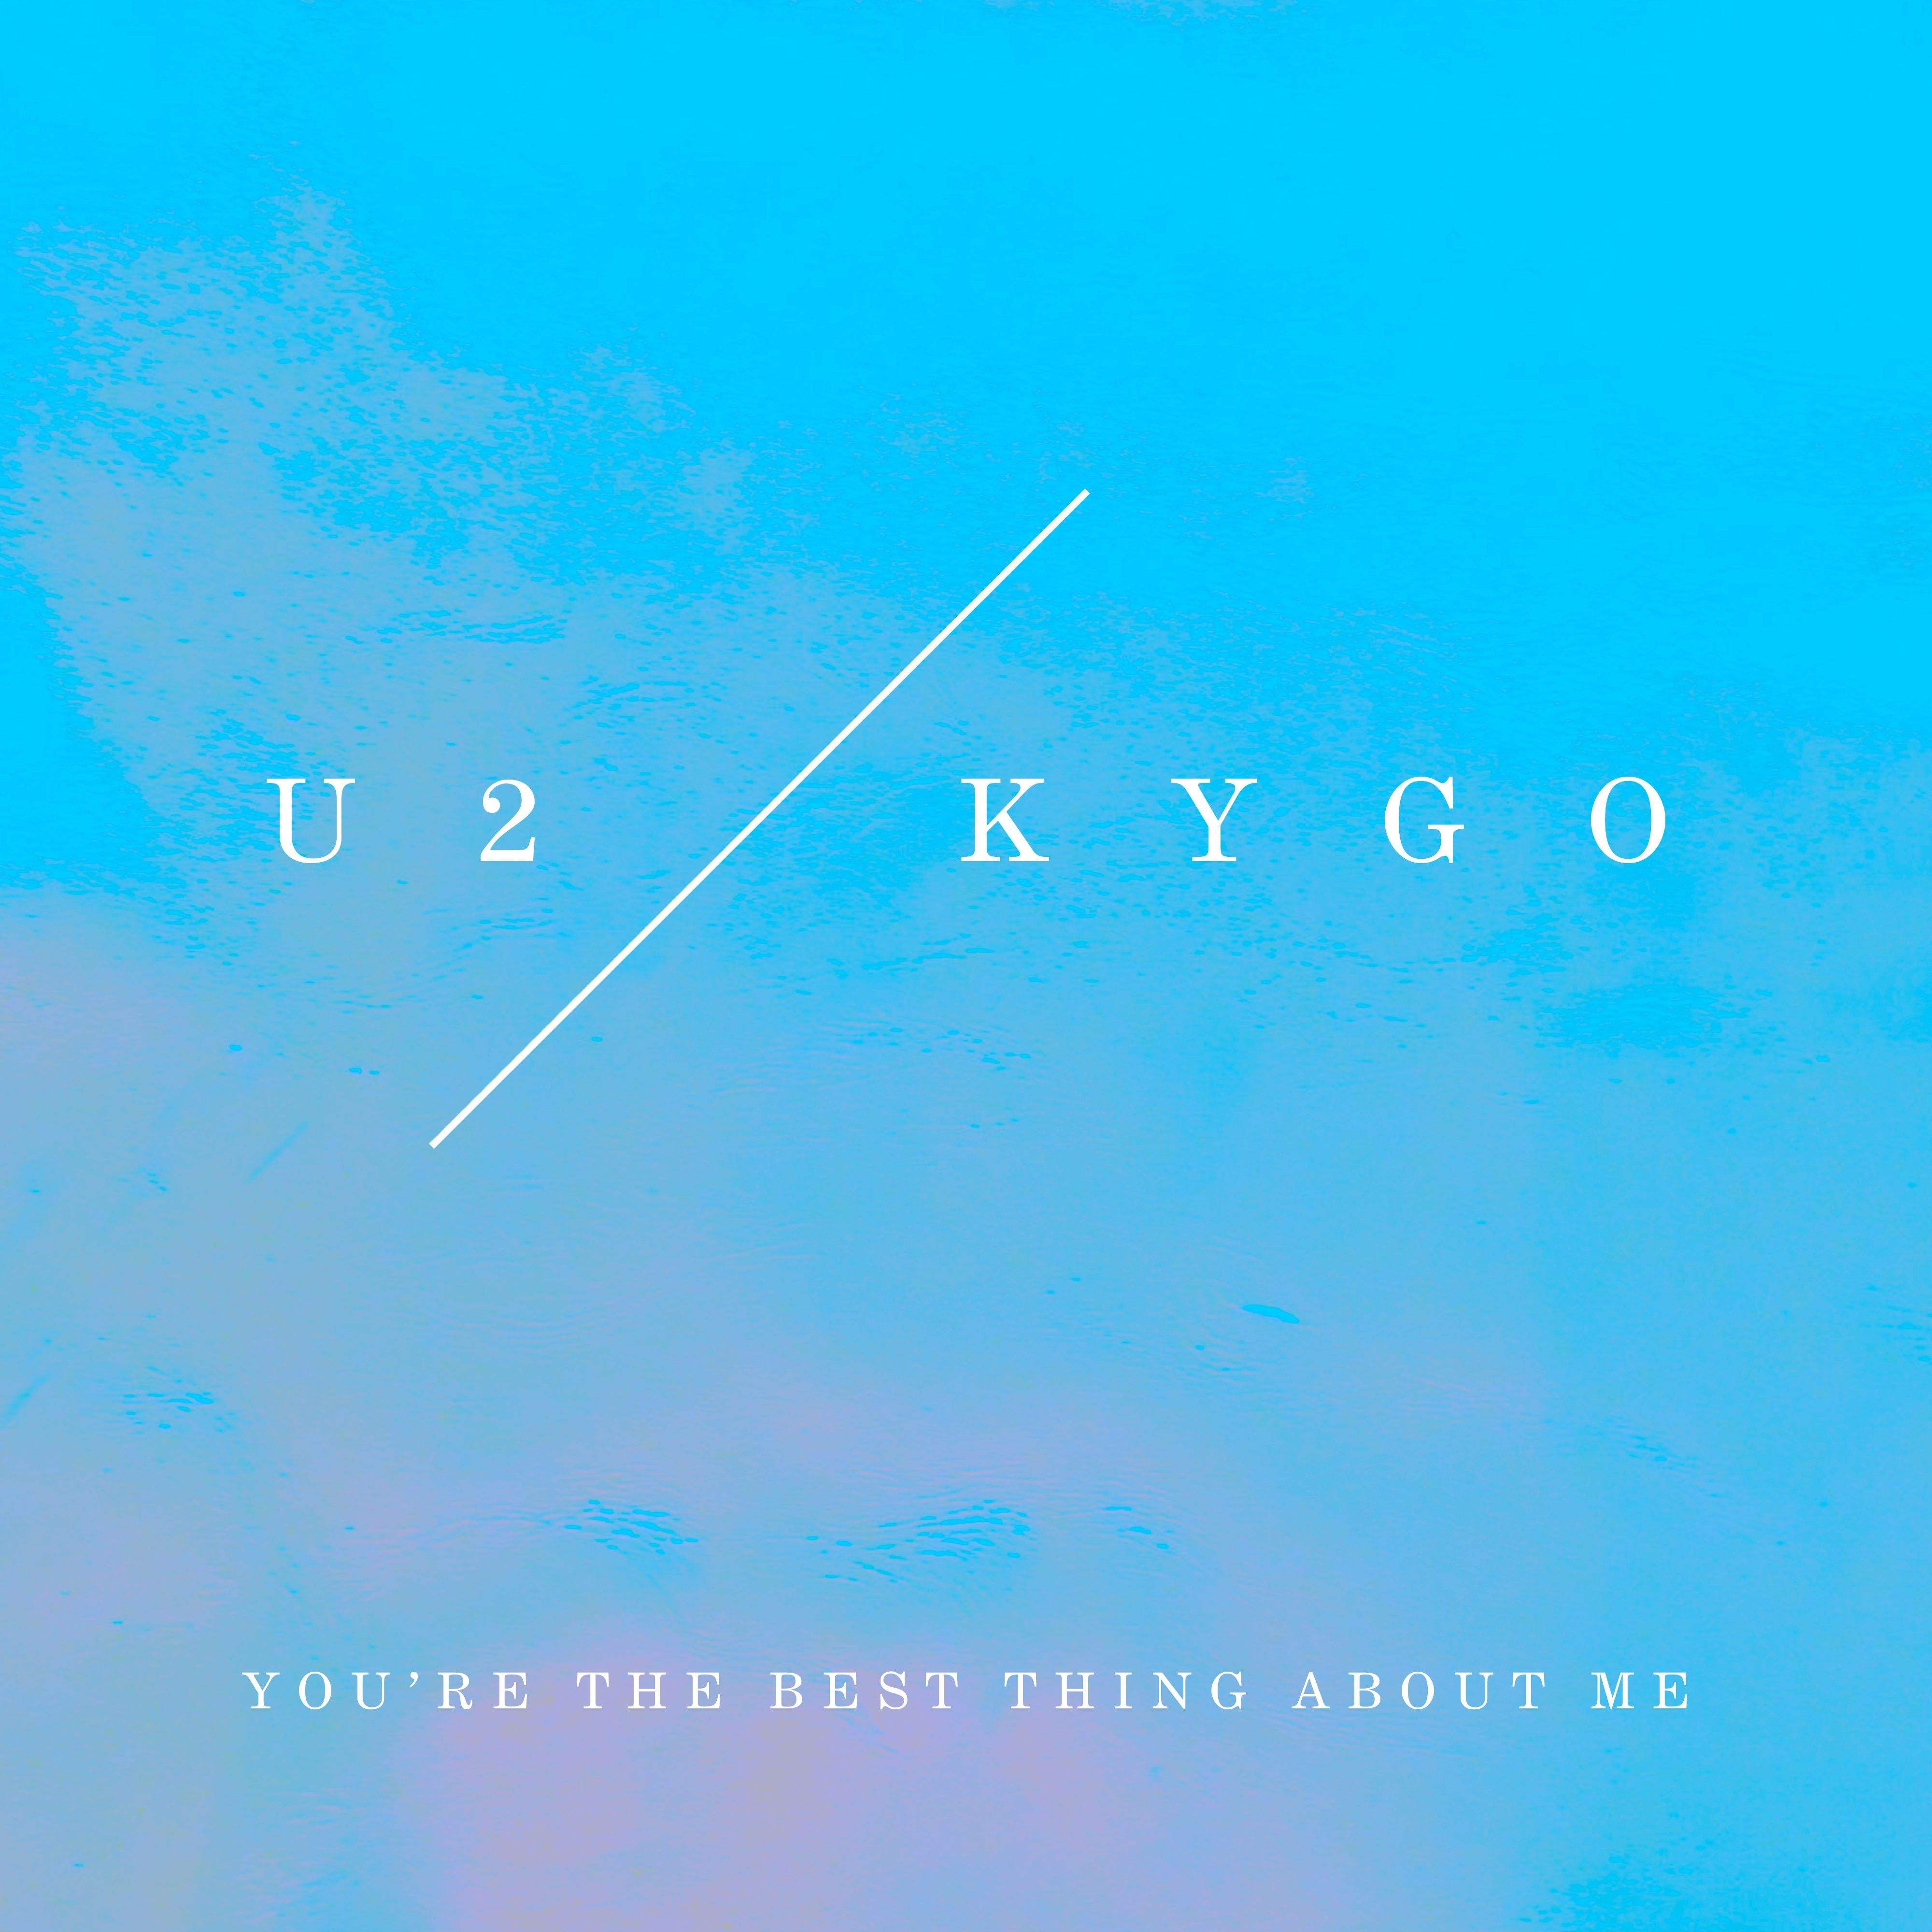 U2 VS. KYGO - YOU'RE THE BEST THING ABOUT ME (VS. KYGO)